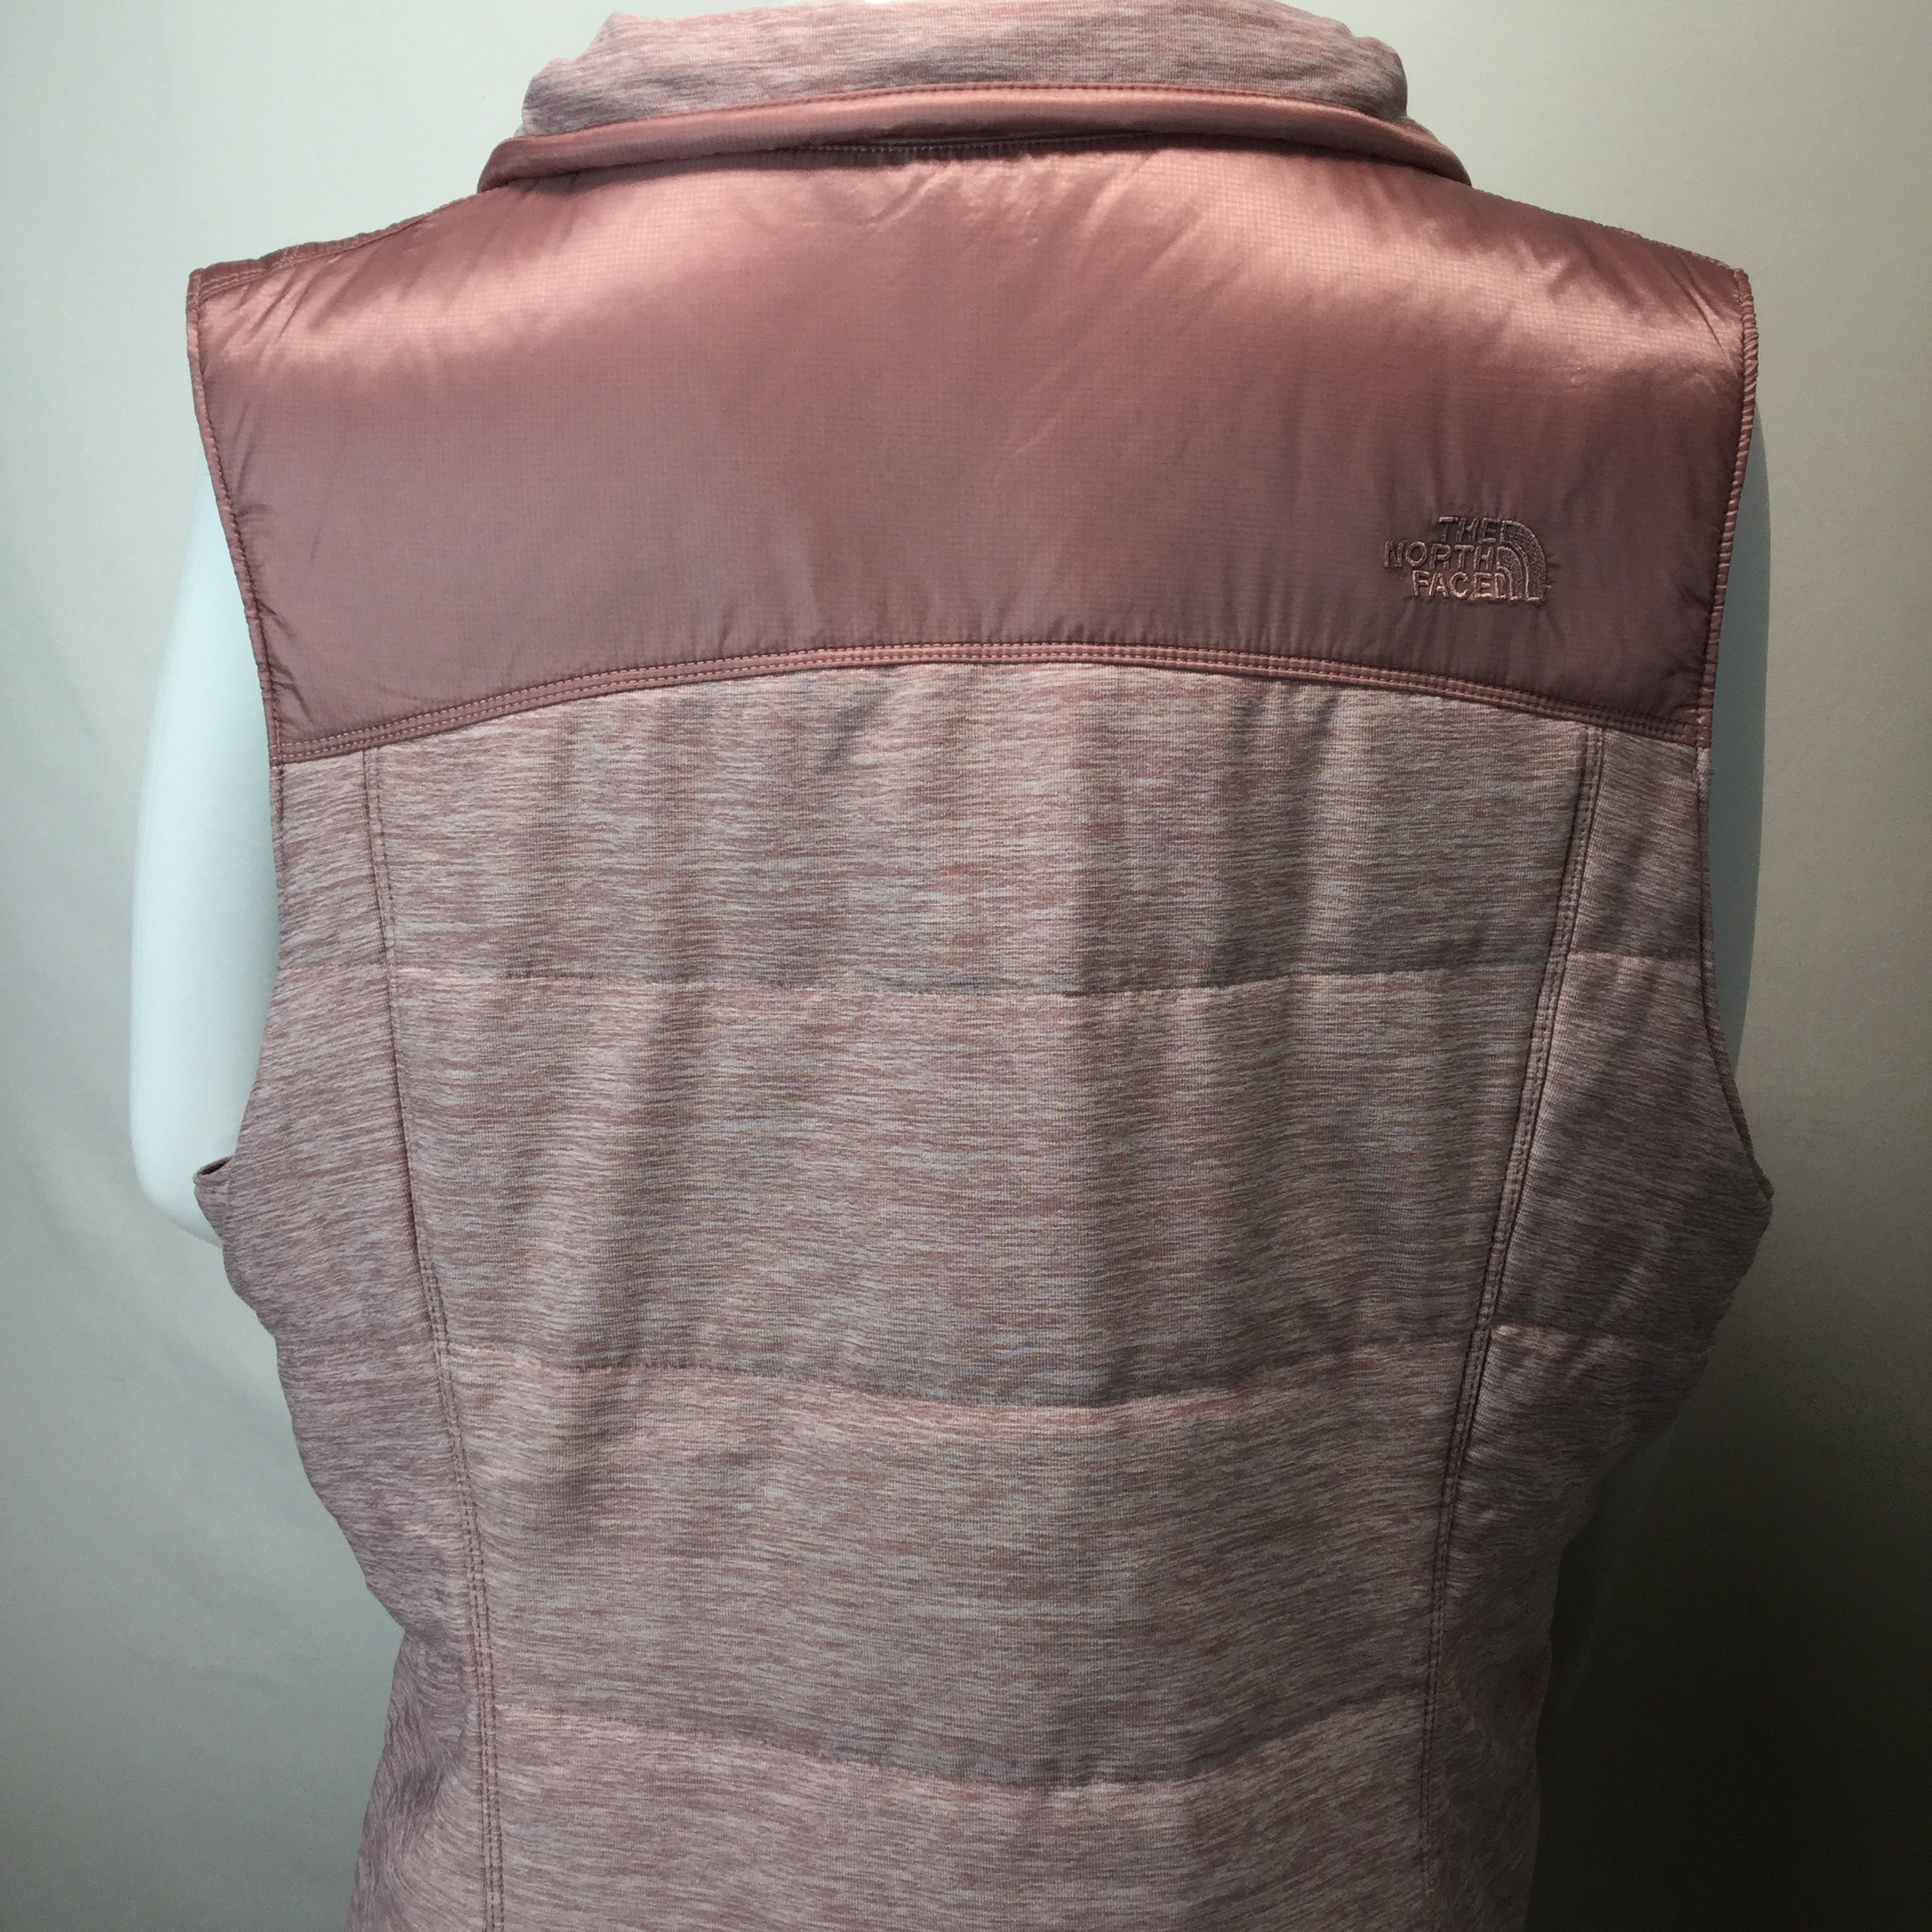 APPAREL,TOPS - MAUVE NEW NORTH FACE POLY FILLED TRAINING VEST FOR EARLY SPRING WORKOUTS. HAS TWO FRONT SLIP POCKETS AND ZIP FRONT.